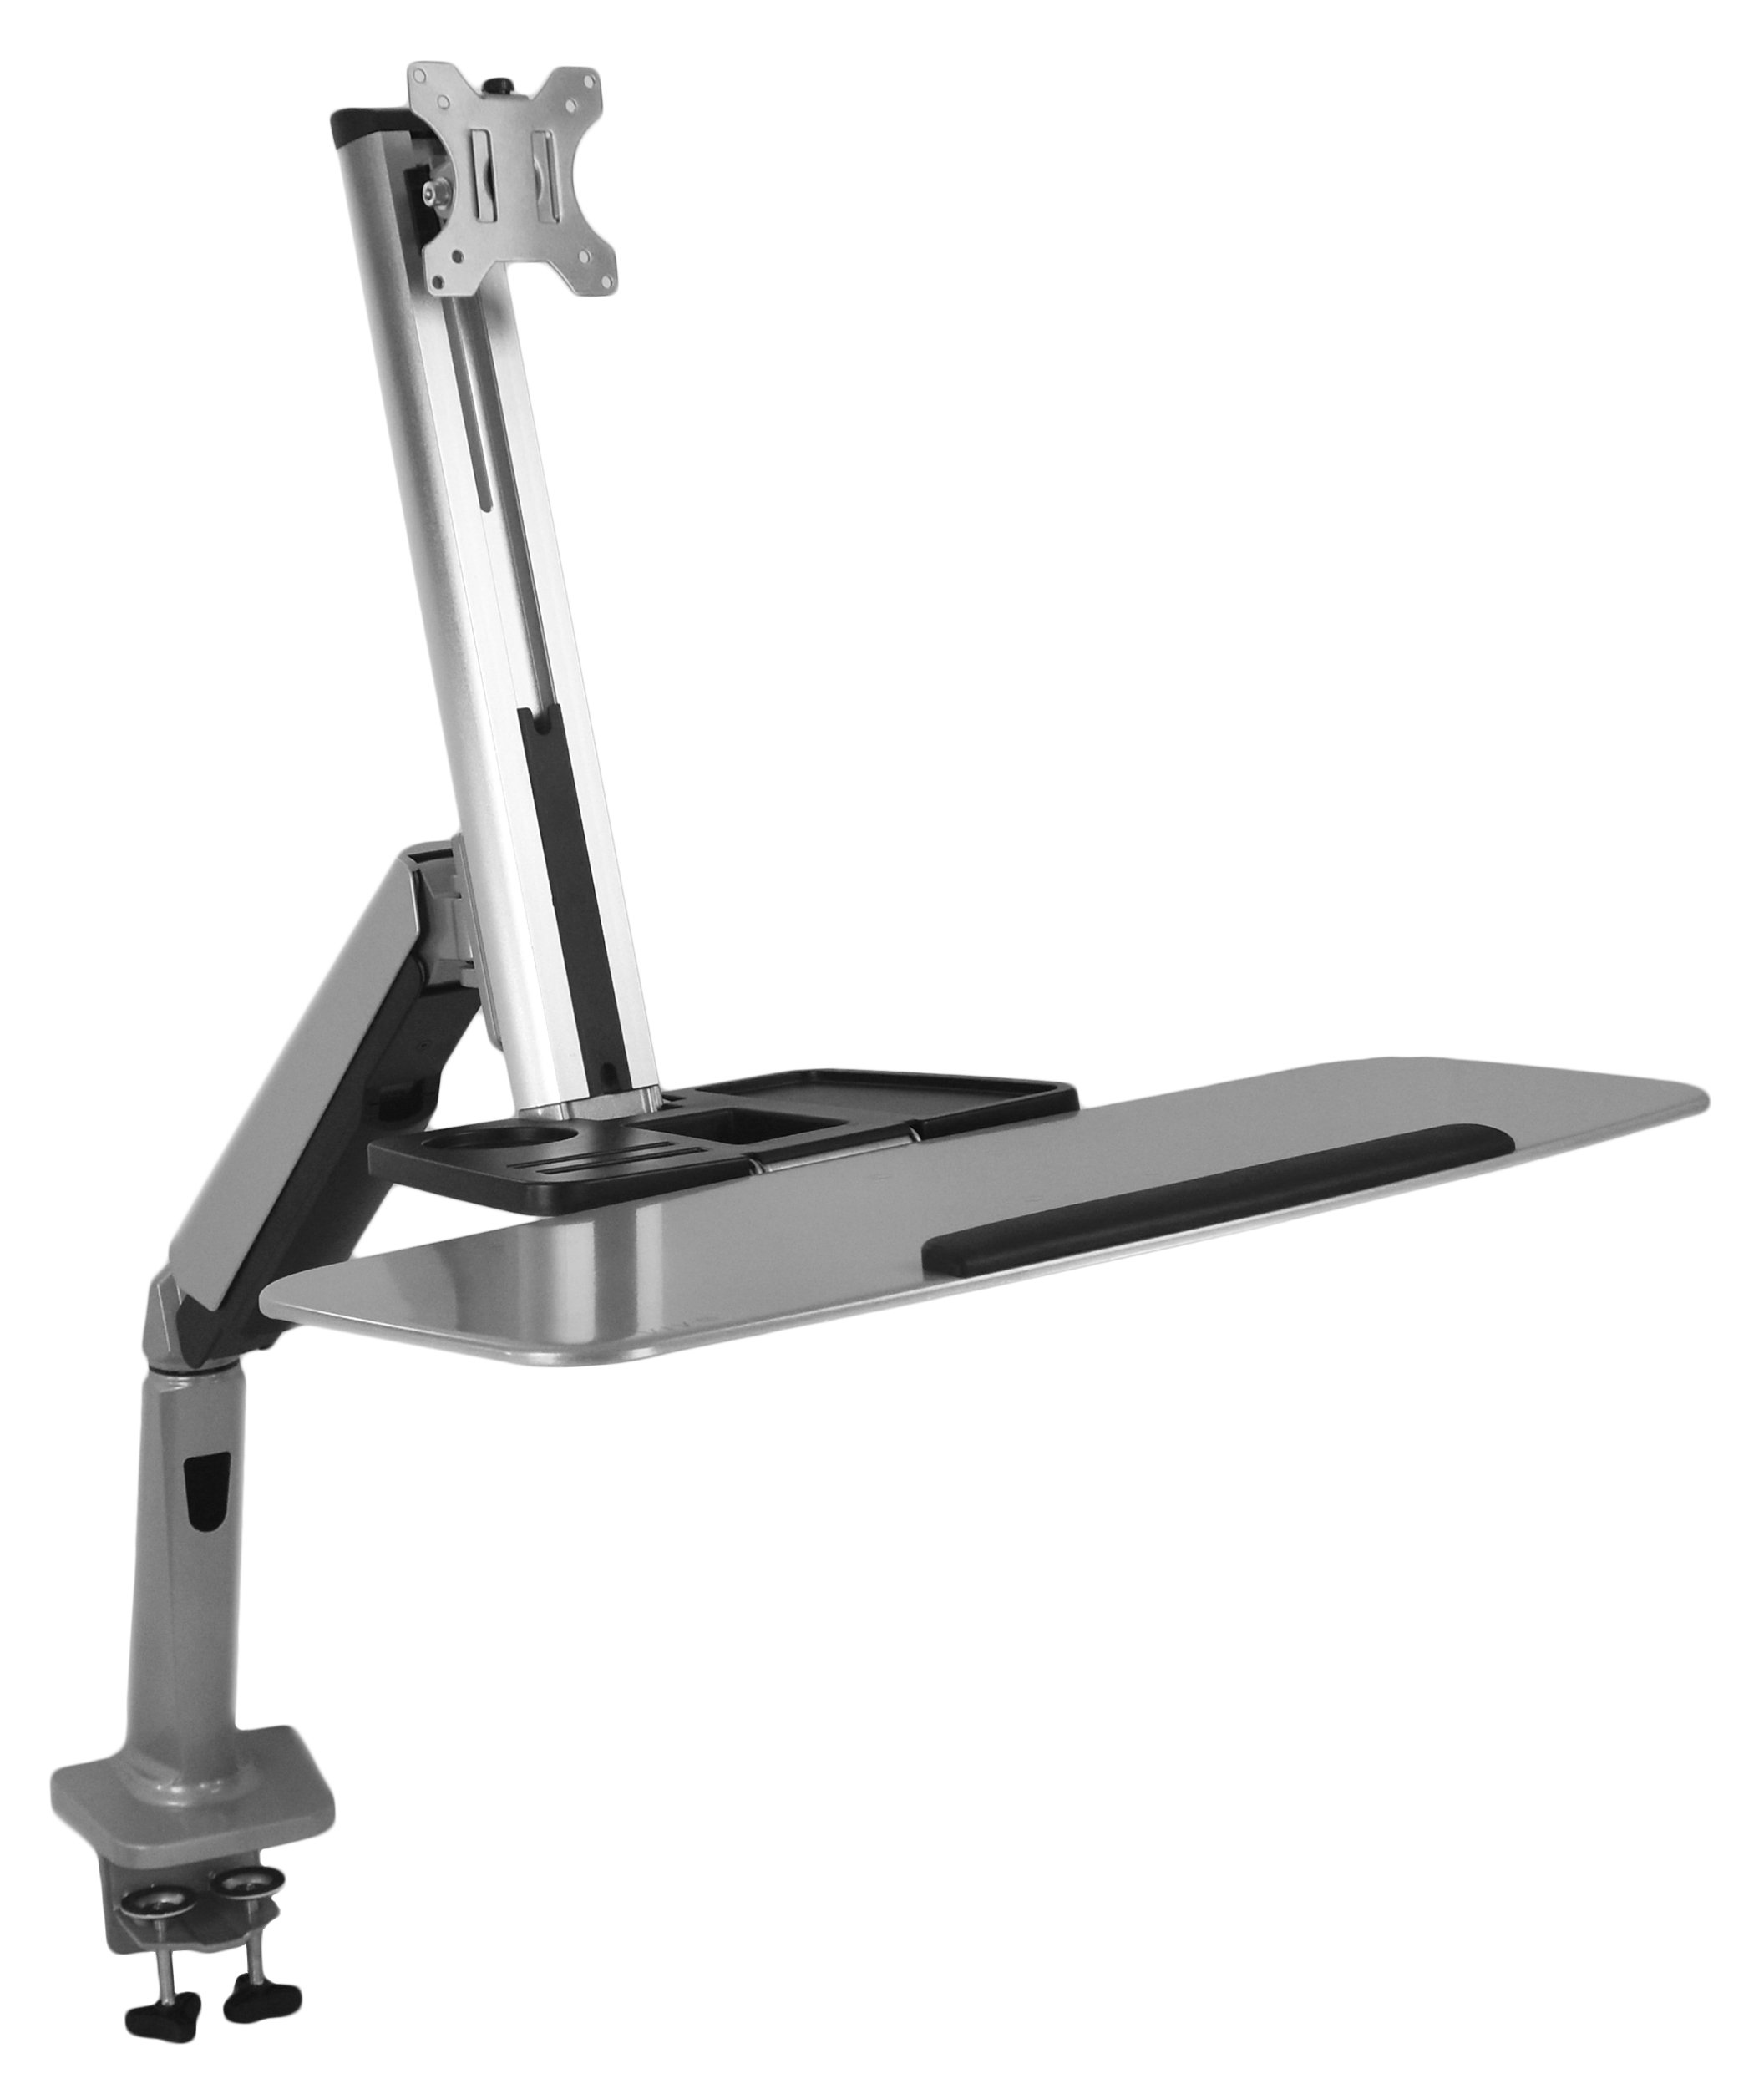 VIVO Single Monitor & Keyboard Counterbalance Sit-Stand Desk Mount | Ergonomic Standing Transition Workstation for 13'' to 32'' Screens (STAND-SIT1S)